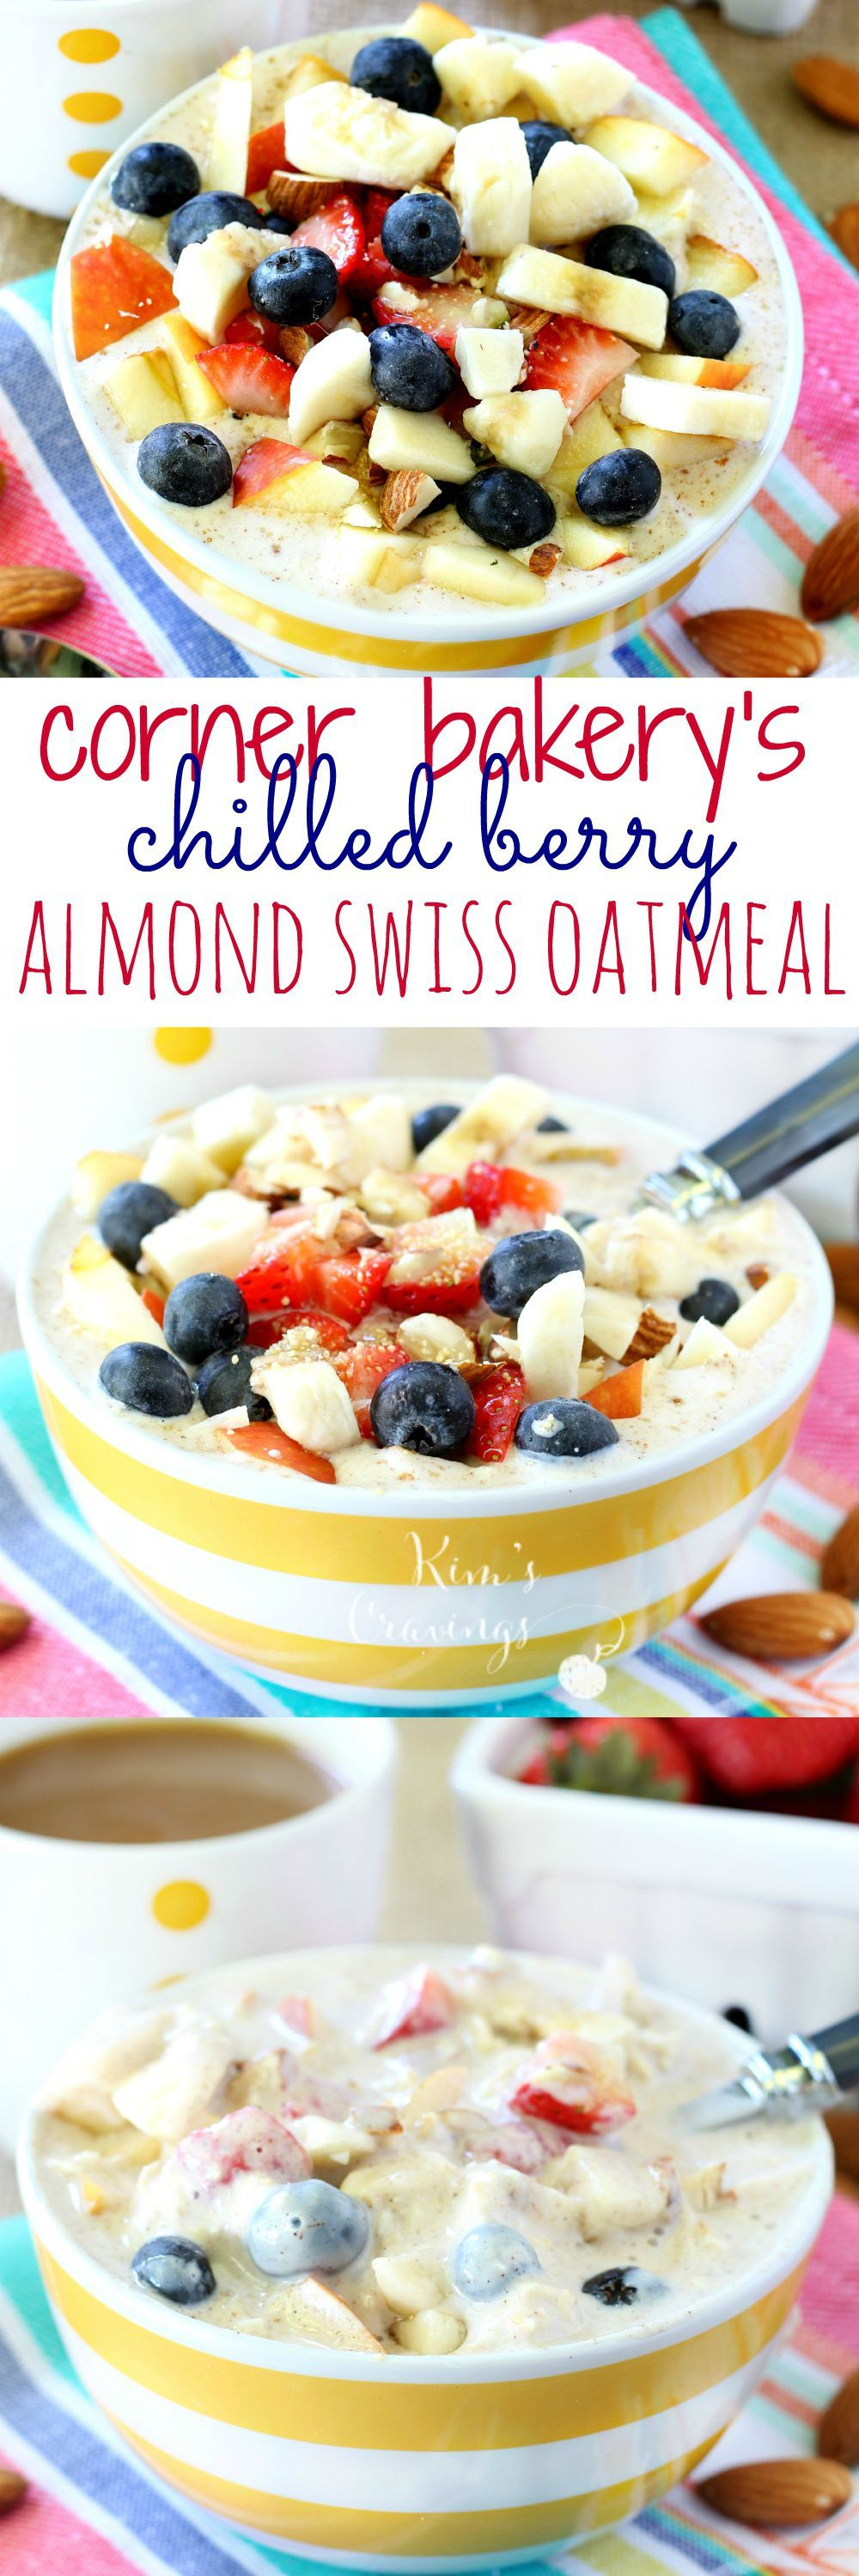 The Corner Bakery's Chilled Berry Almond Swiss Oatmeal is a seasonal item, but with this copycat recipe, you can enjoy this delicious swiss oatmeal year round! (made healthier & gluten-free)